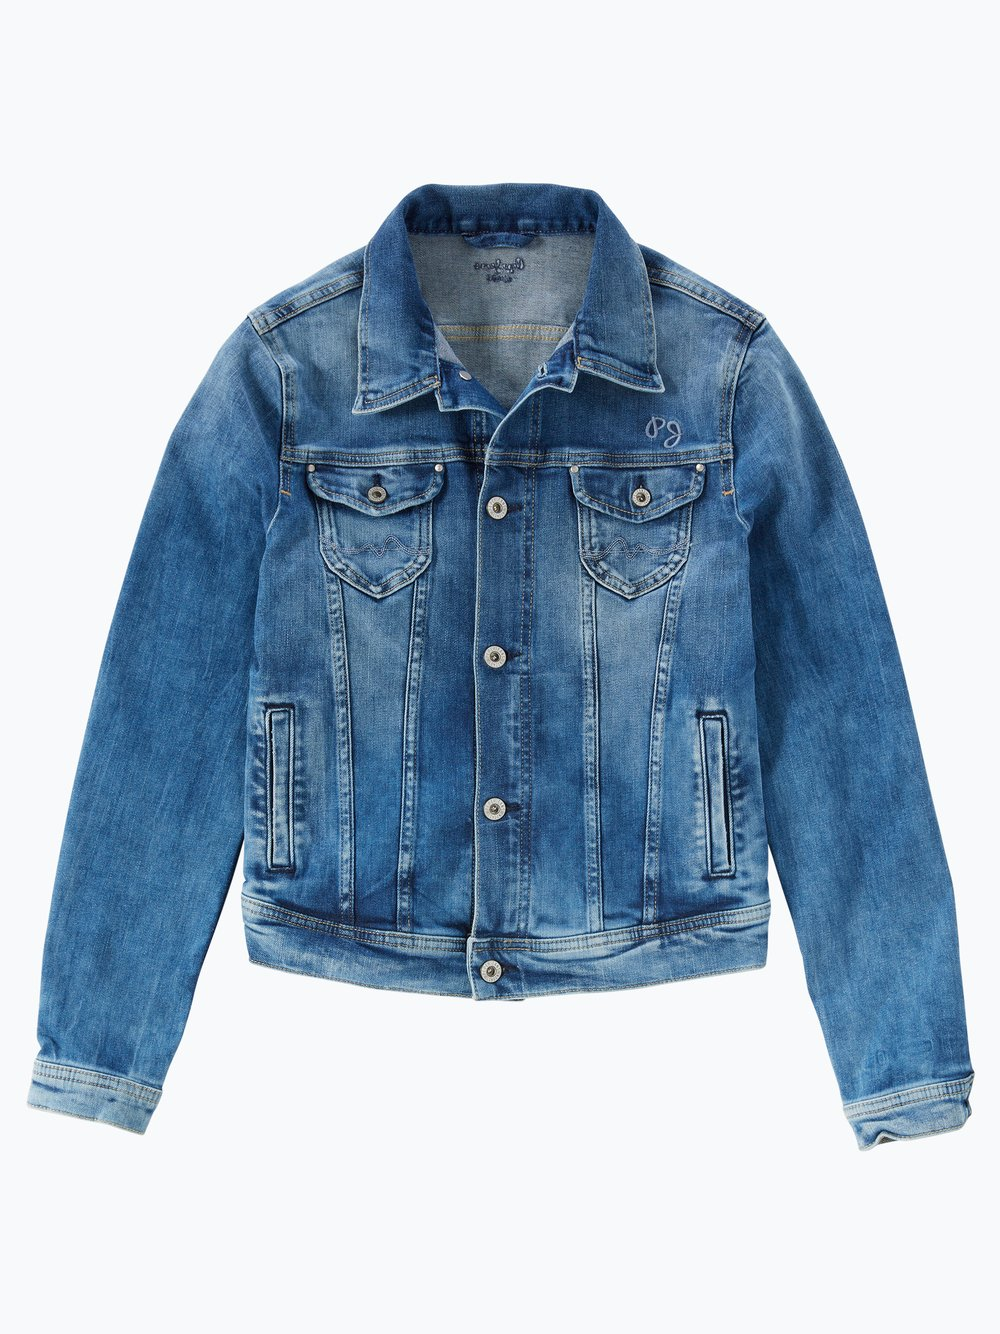 buy online c62fe ad78a Pepe Jeans Mädchen Jeansjacke - New Berry online kaufen ...